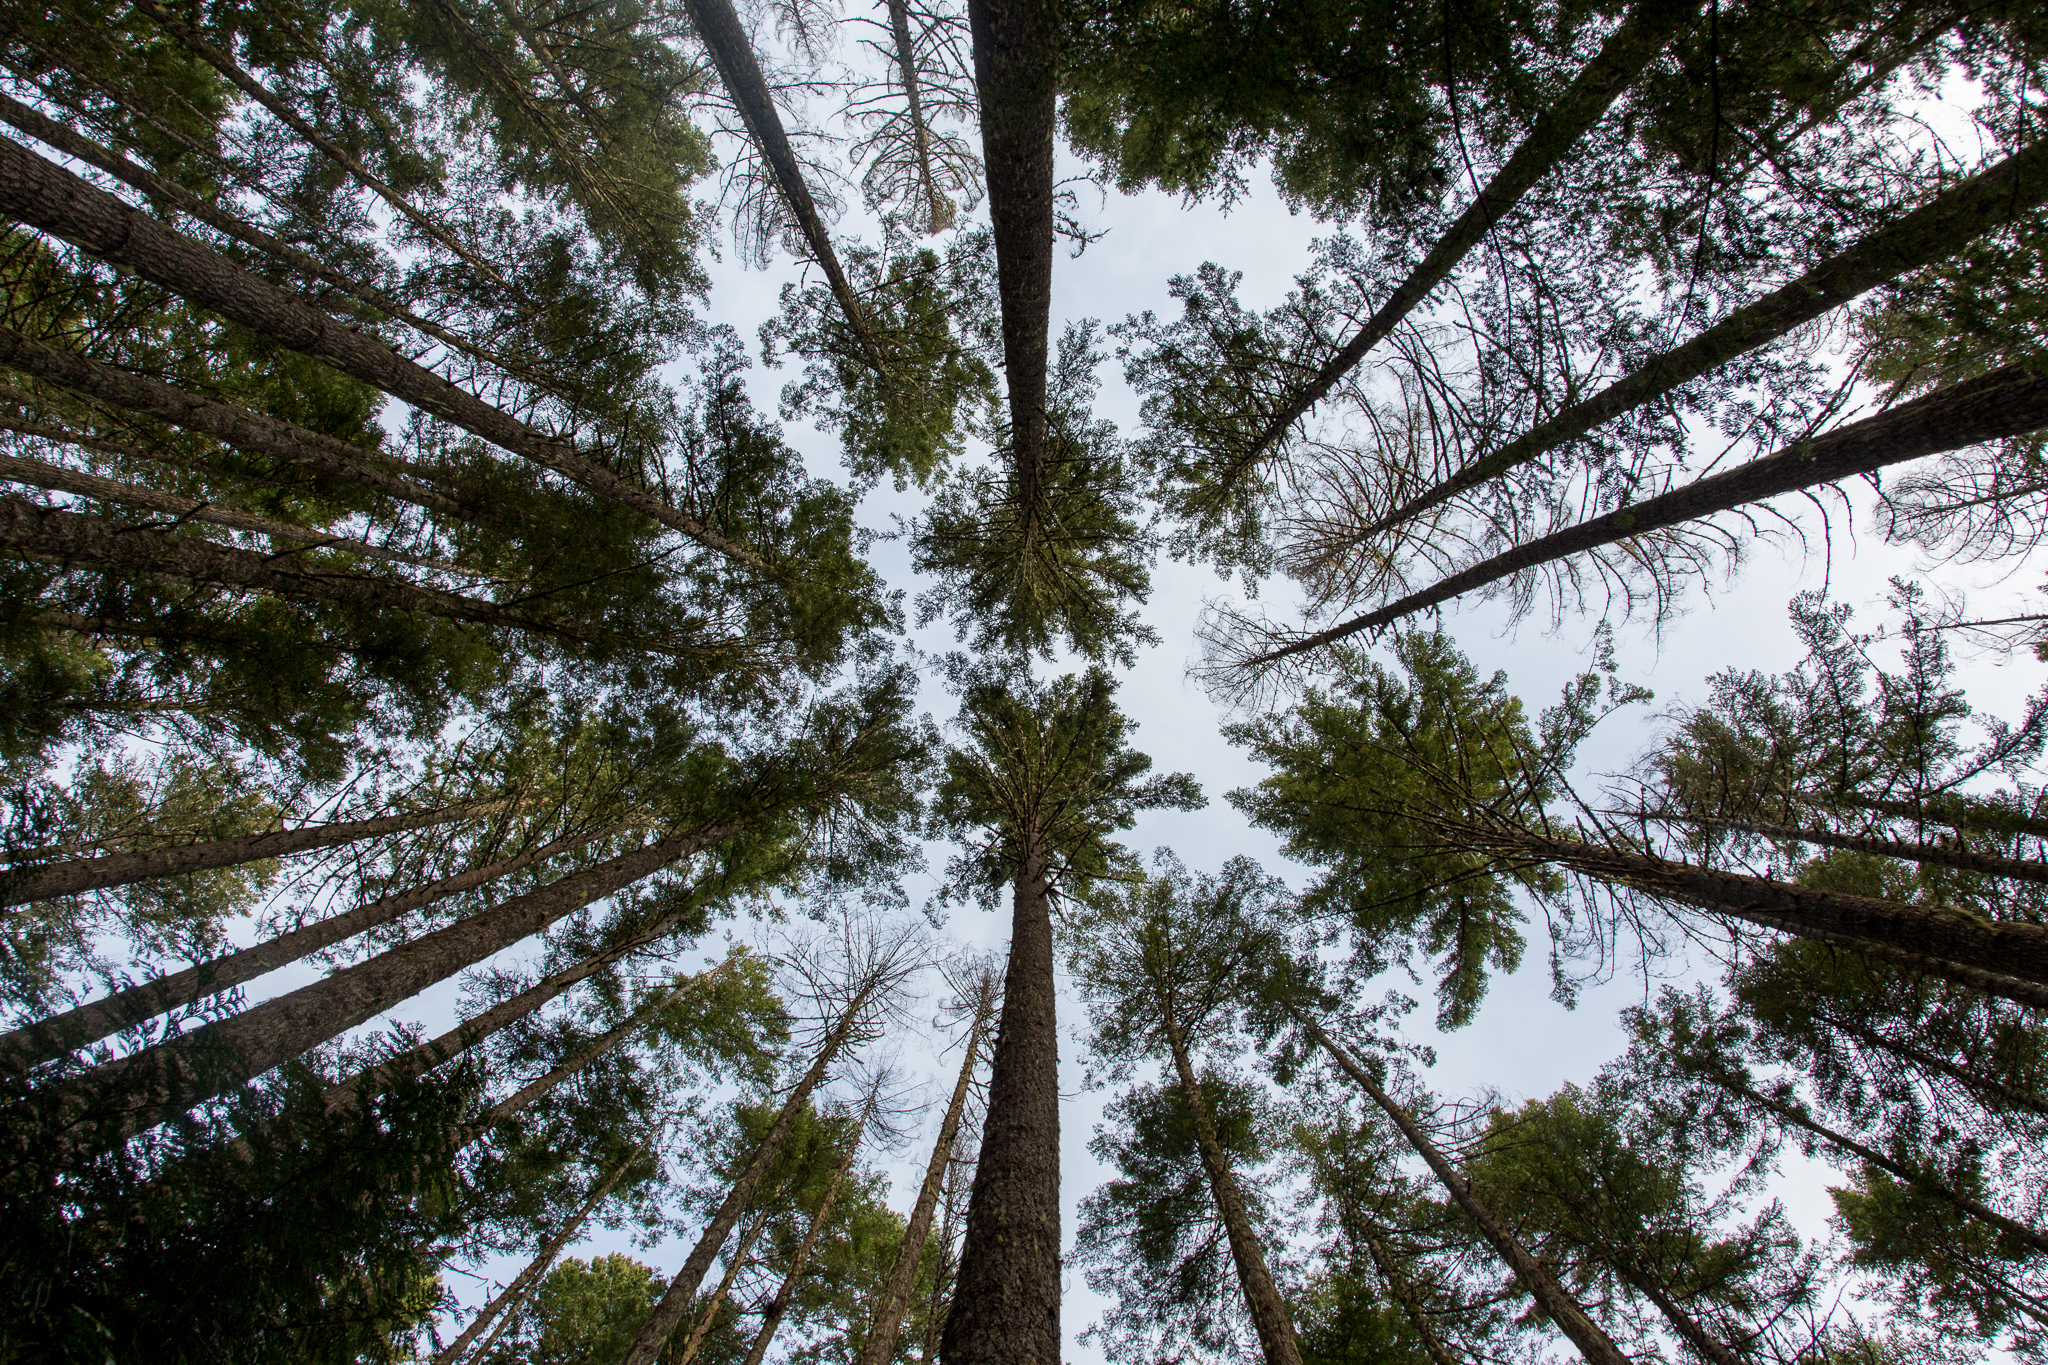 An image of trees in Olympic National Park which requires a lot of dynamic range.